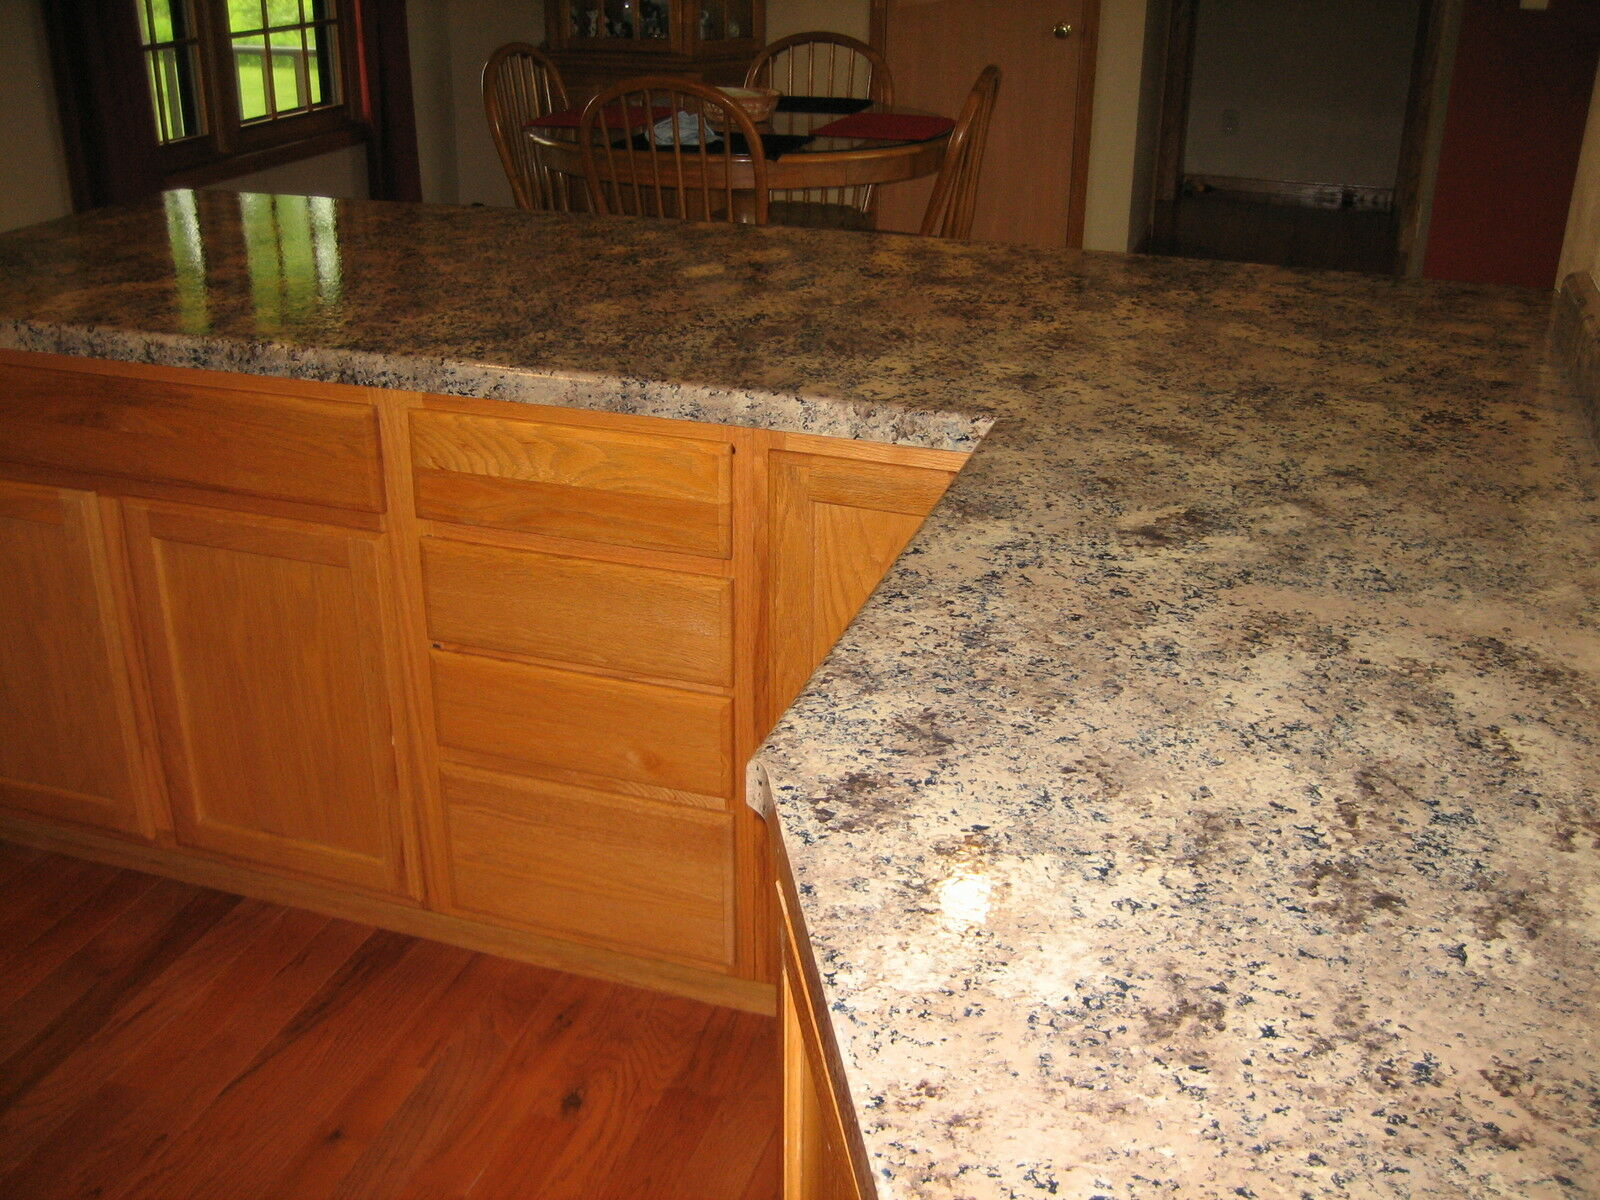 Countertop Paint Kits Canada : GRANITE COUNTERTOP PAINT (Kit Has Everything You Need) ? CAD 103.92 ...